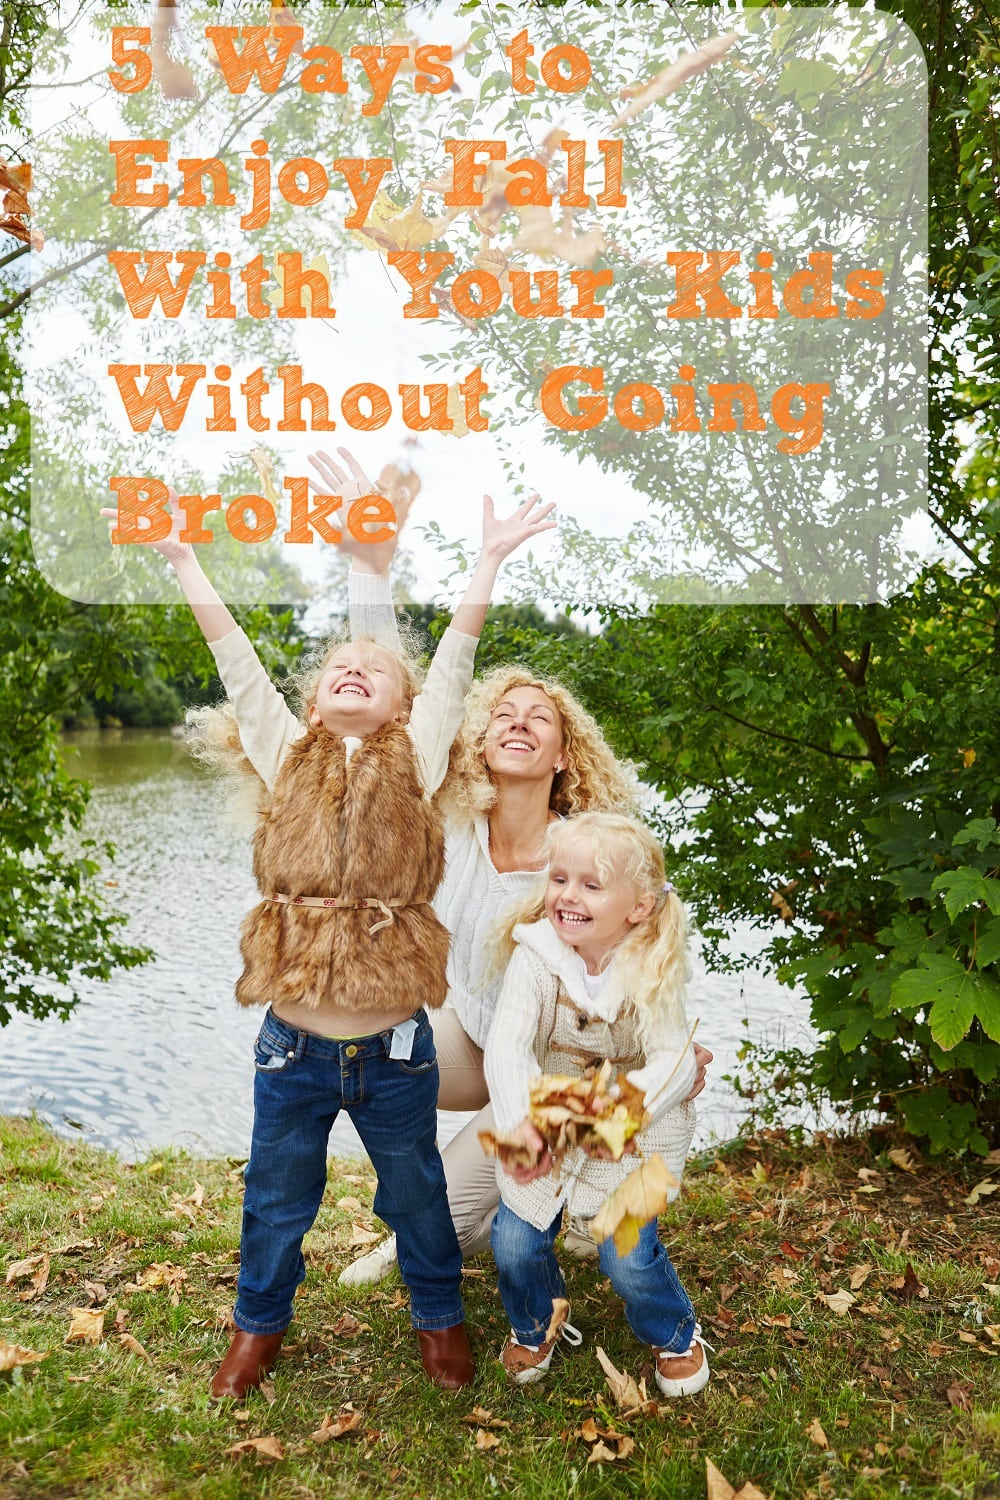 5 Ways To Enjoy Fall With Your Kids Without Going Broke